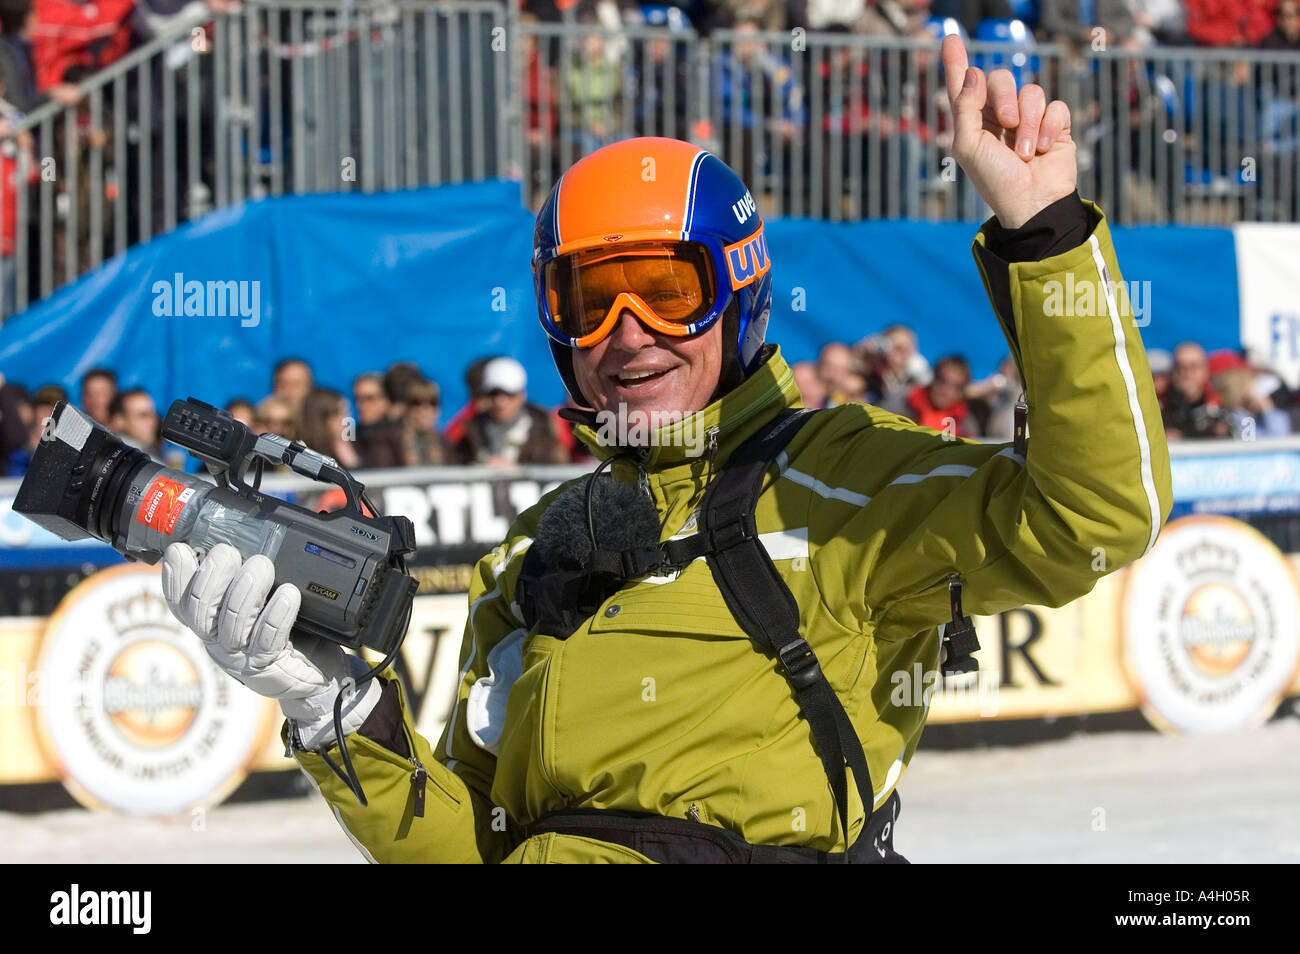 Markus Wasmeier, Camera run, FIS Ski Worldcup, Downhill men, Kandahar race, Garmisch-Partenkirchen, Bavaria, Germany - Stock Image